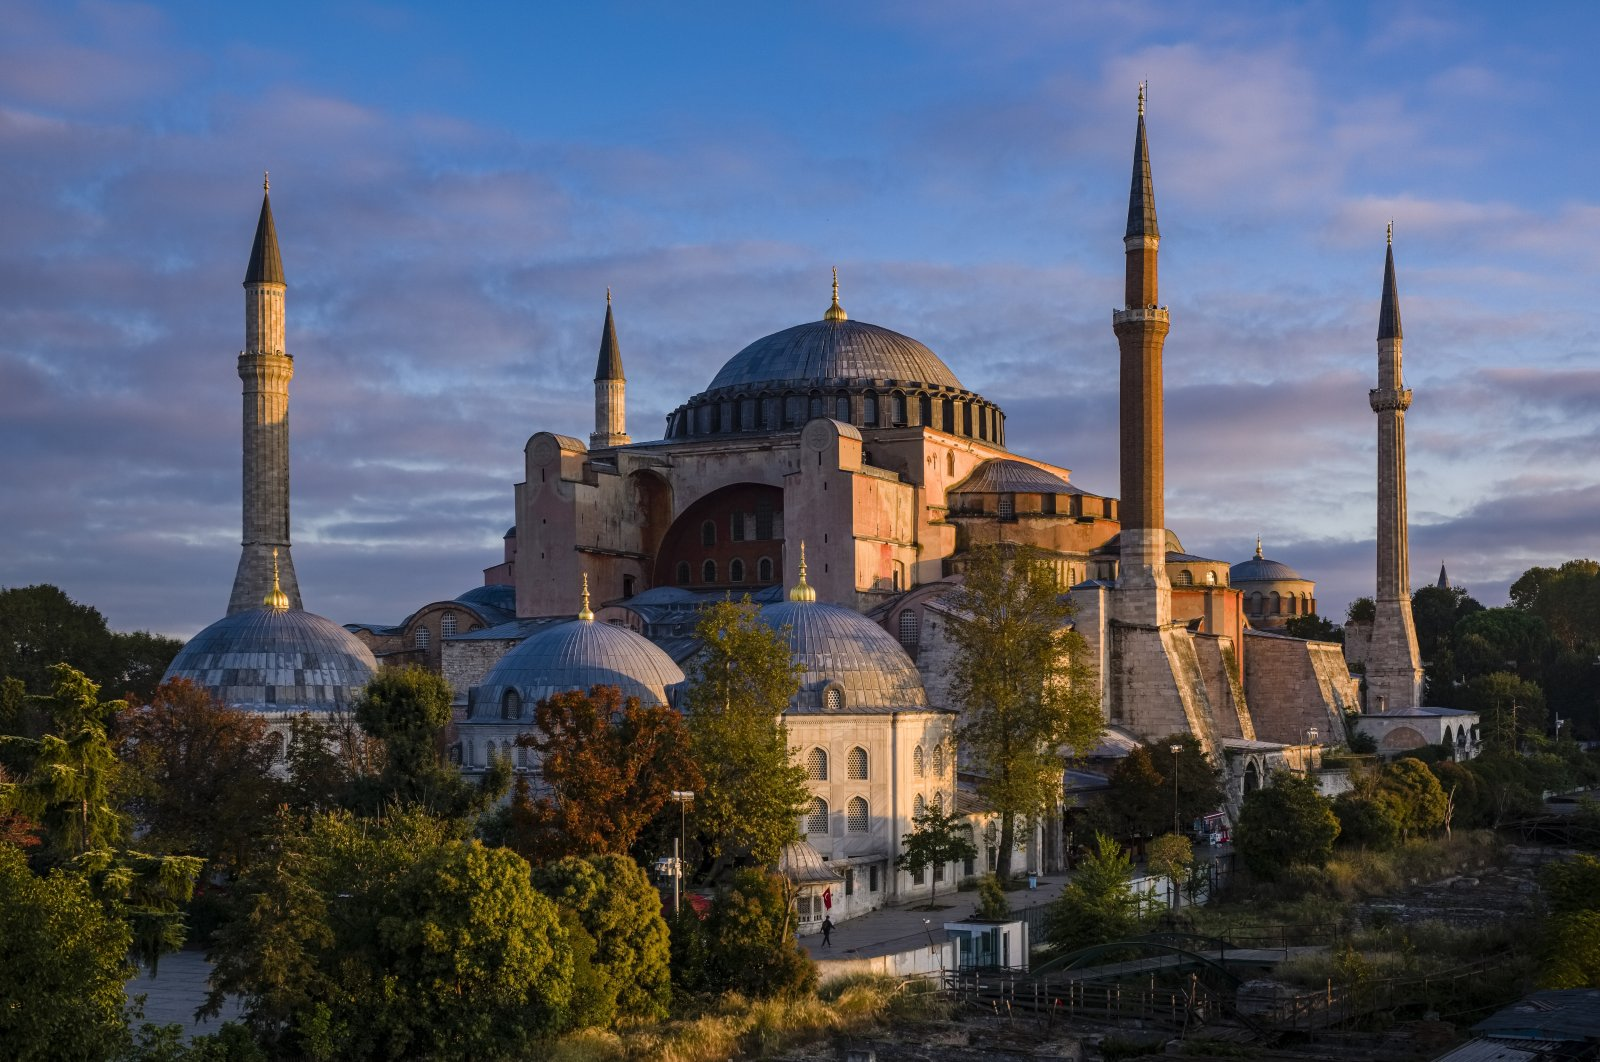 Hagia Sophia, or the Hagia Sophia Grand Mosque, can be seen in Istanbul, Turkey, Oct. 14, 2019. (Getty Images)